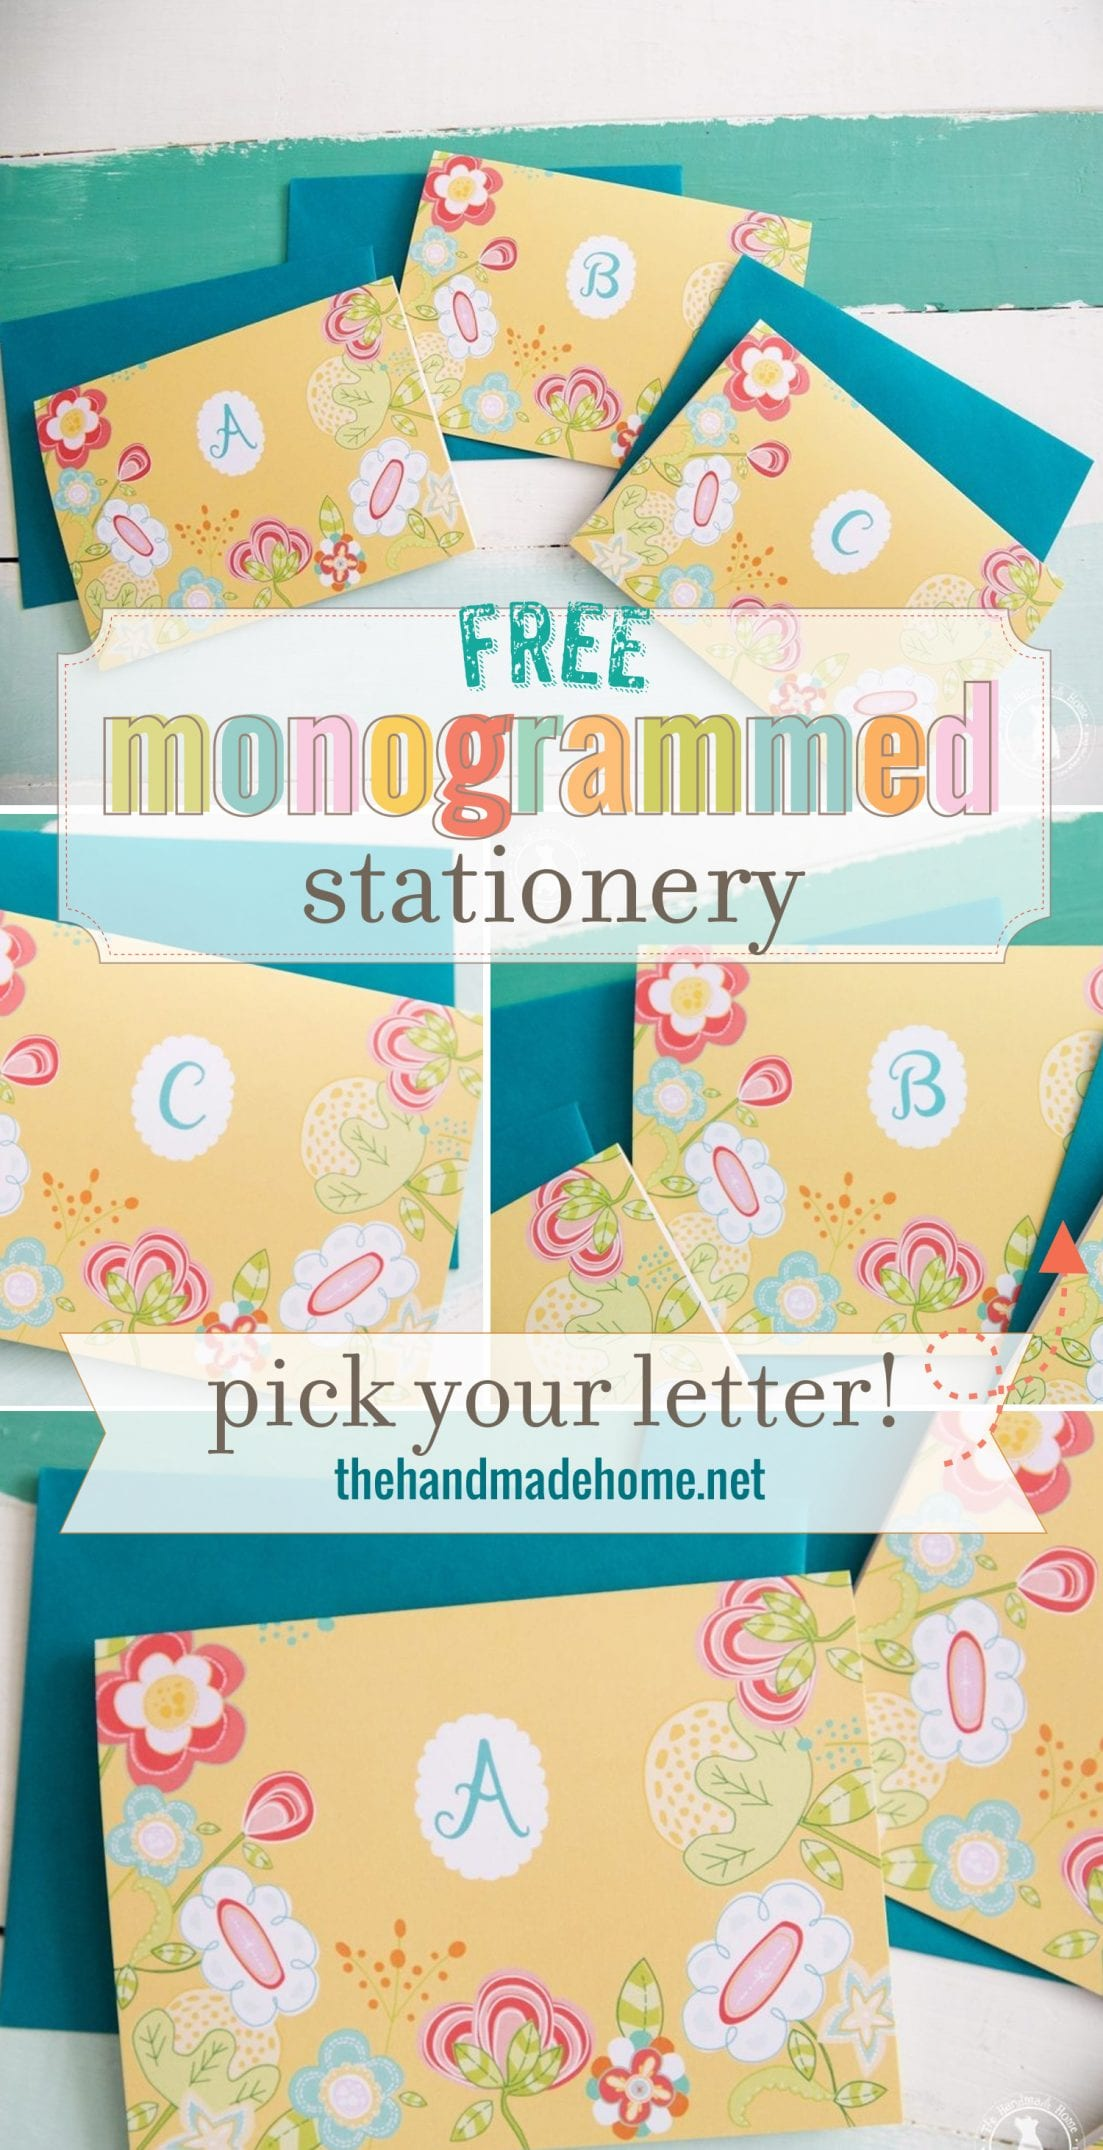 photo about Free Monogram Printable named Free of charge Monogram Stationery - Printable Stationery For Any